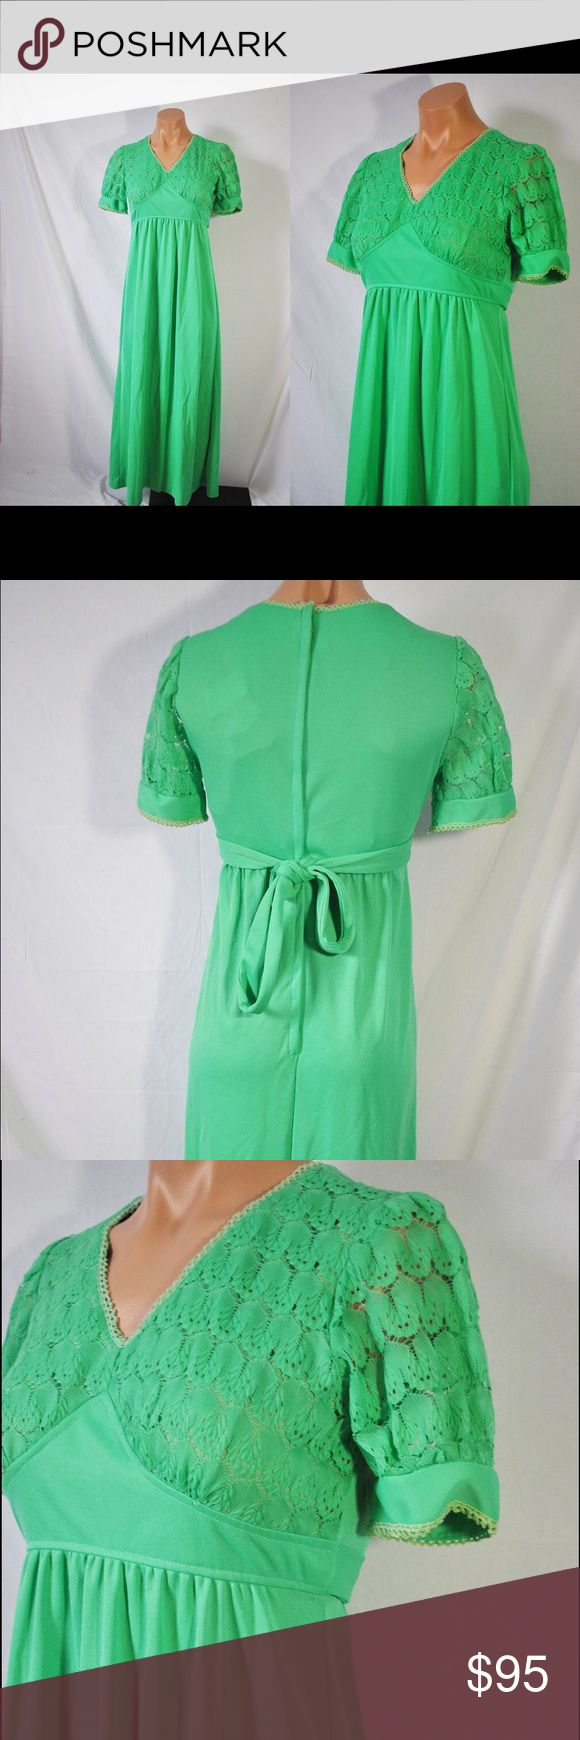 Vintage 60s Green Empire Waist Maxi Dress Vintage 70s Summer Boho Festival Dress   Green with a maxi length.  Has an empire waist, and a crocheted top.  Zips up in the back.  Unlined.   Material: 100% Textured Polyester   Measurements. (Measured Lying Flat.)  Bust: 30 in.  Waist: 24 in.  Hips: 36 1/2 to 38 in.  Length: 50 in. Vintage Dresses Maxi